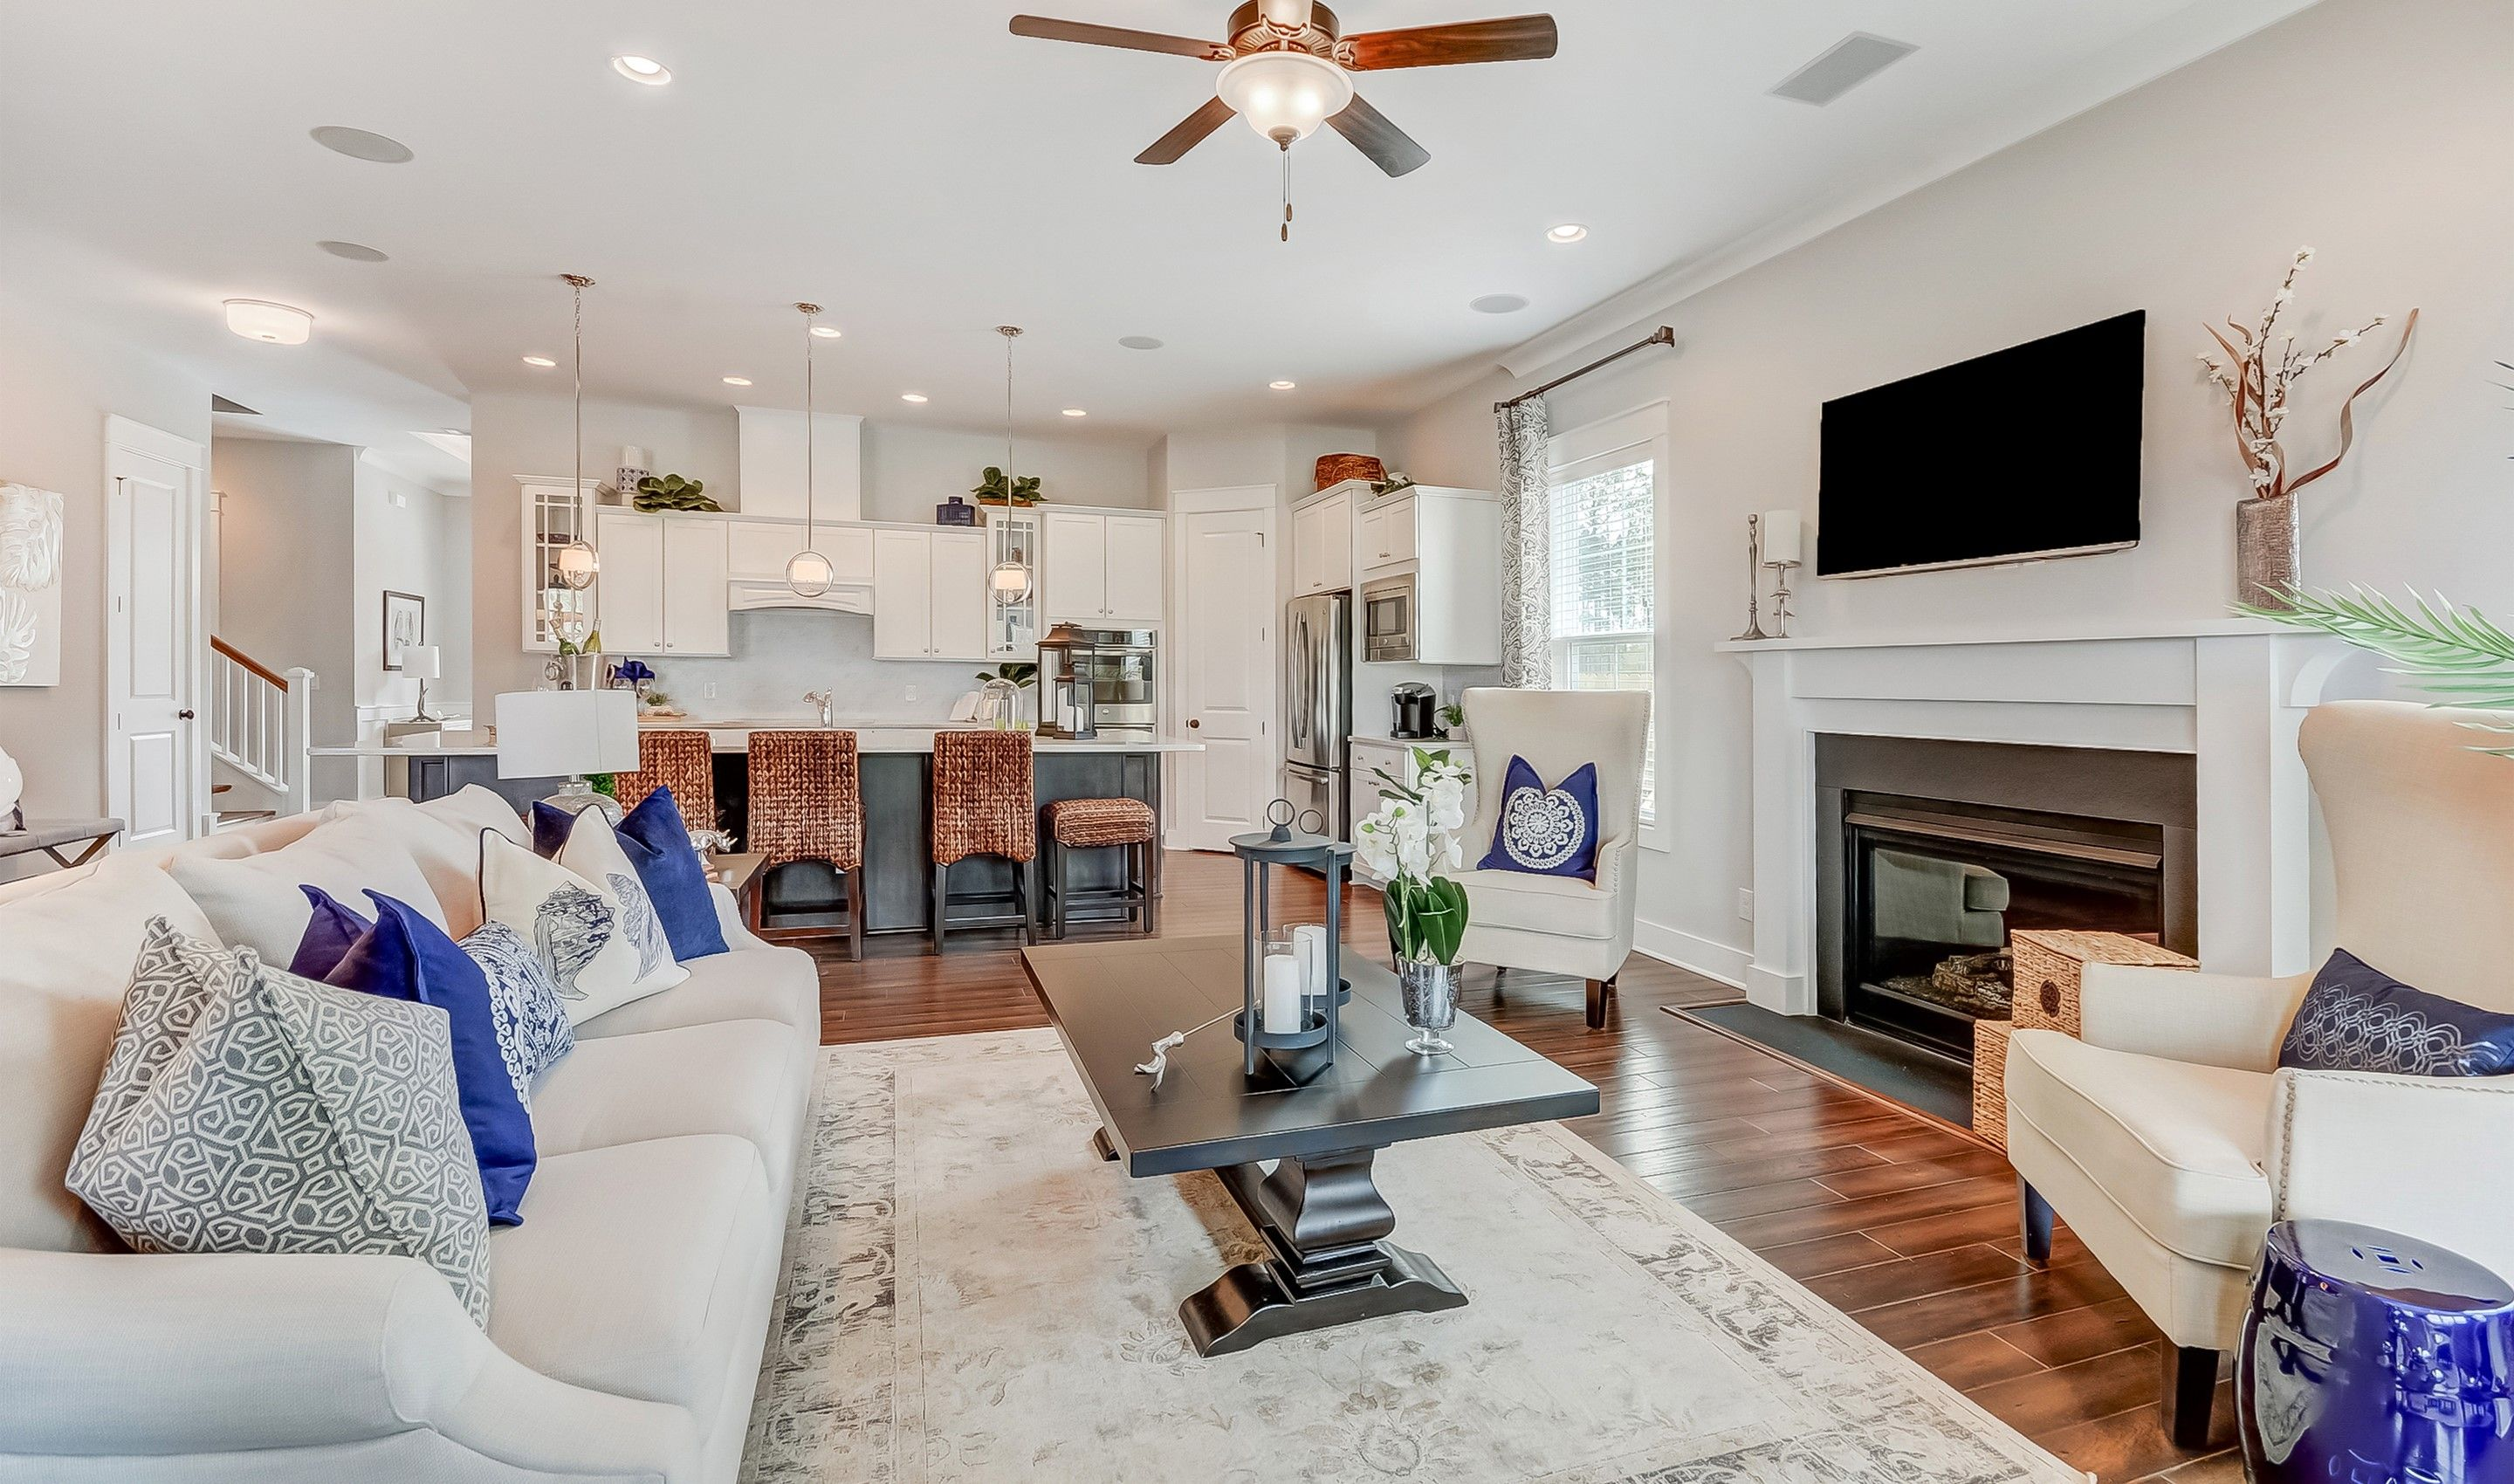 Single Family for Sale at Louisville - Grove Collection 143 Bramswell Road, Homesite 666 Pooler, Georgia 31322 United States